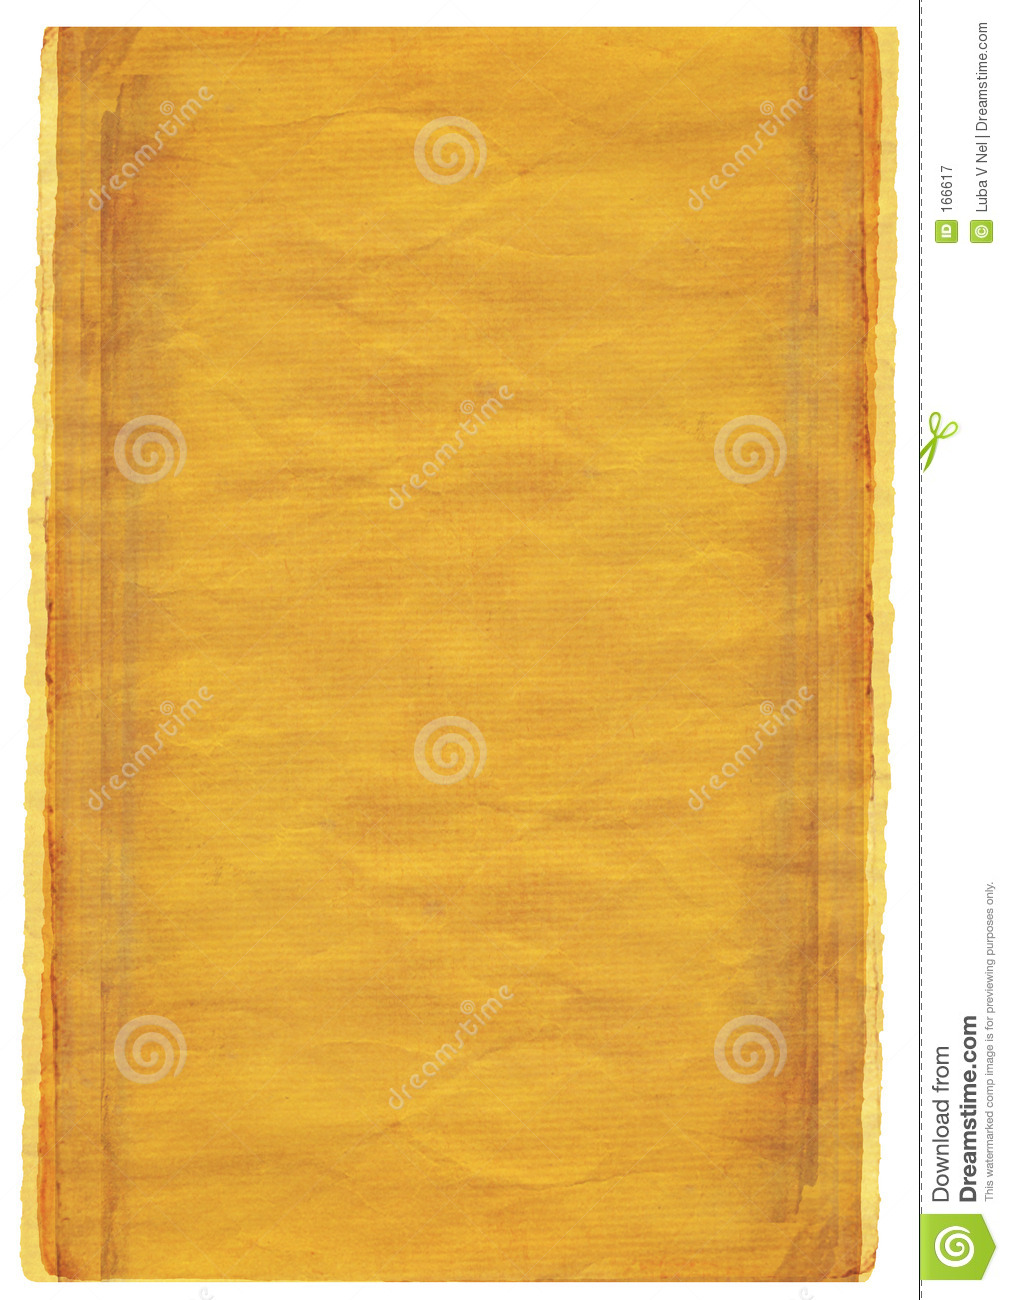 grunge warm yellow background with torn edges